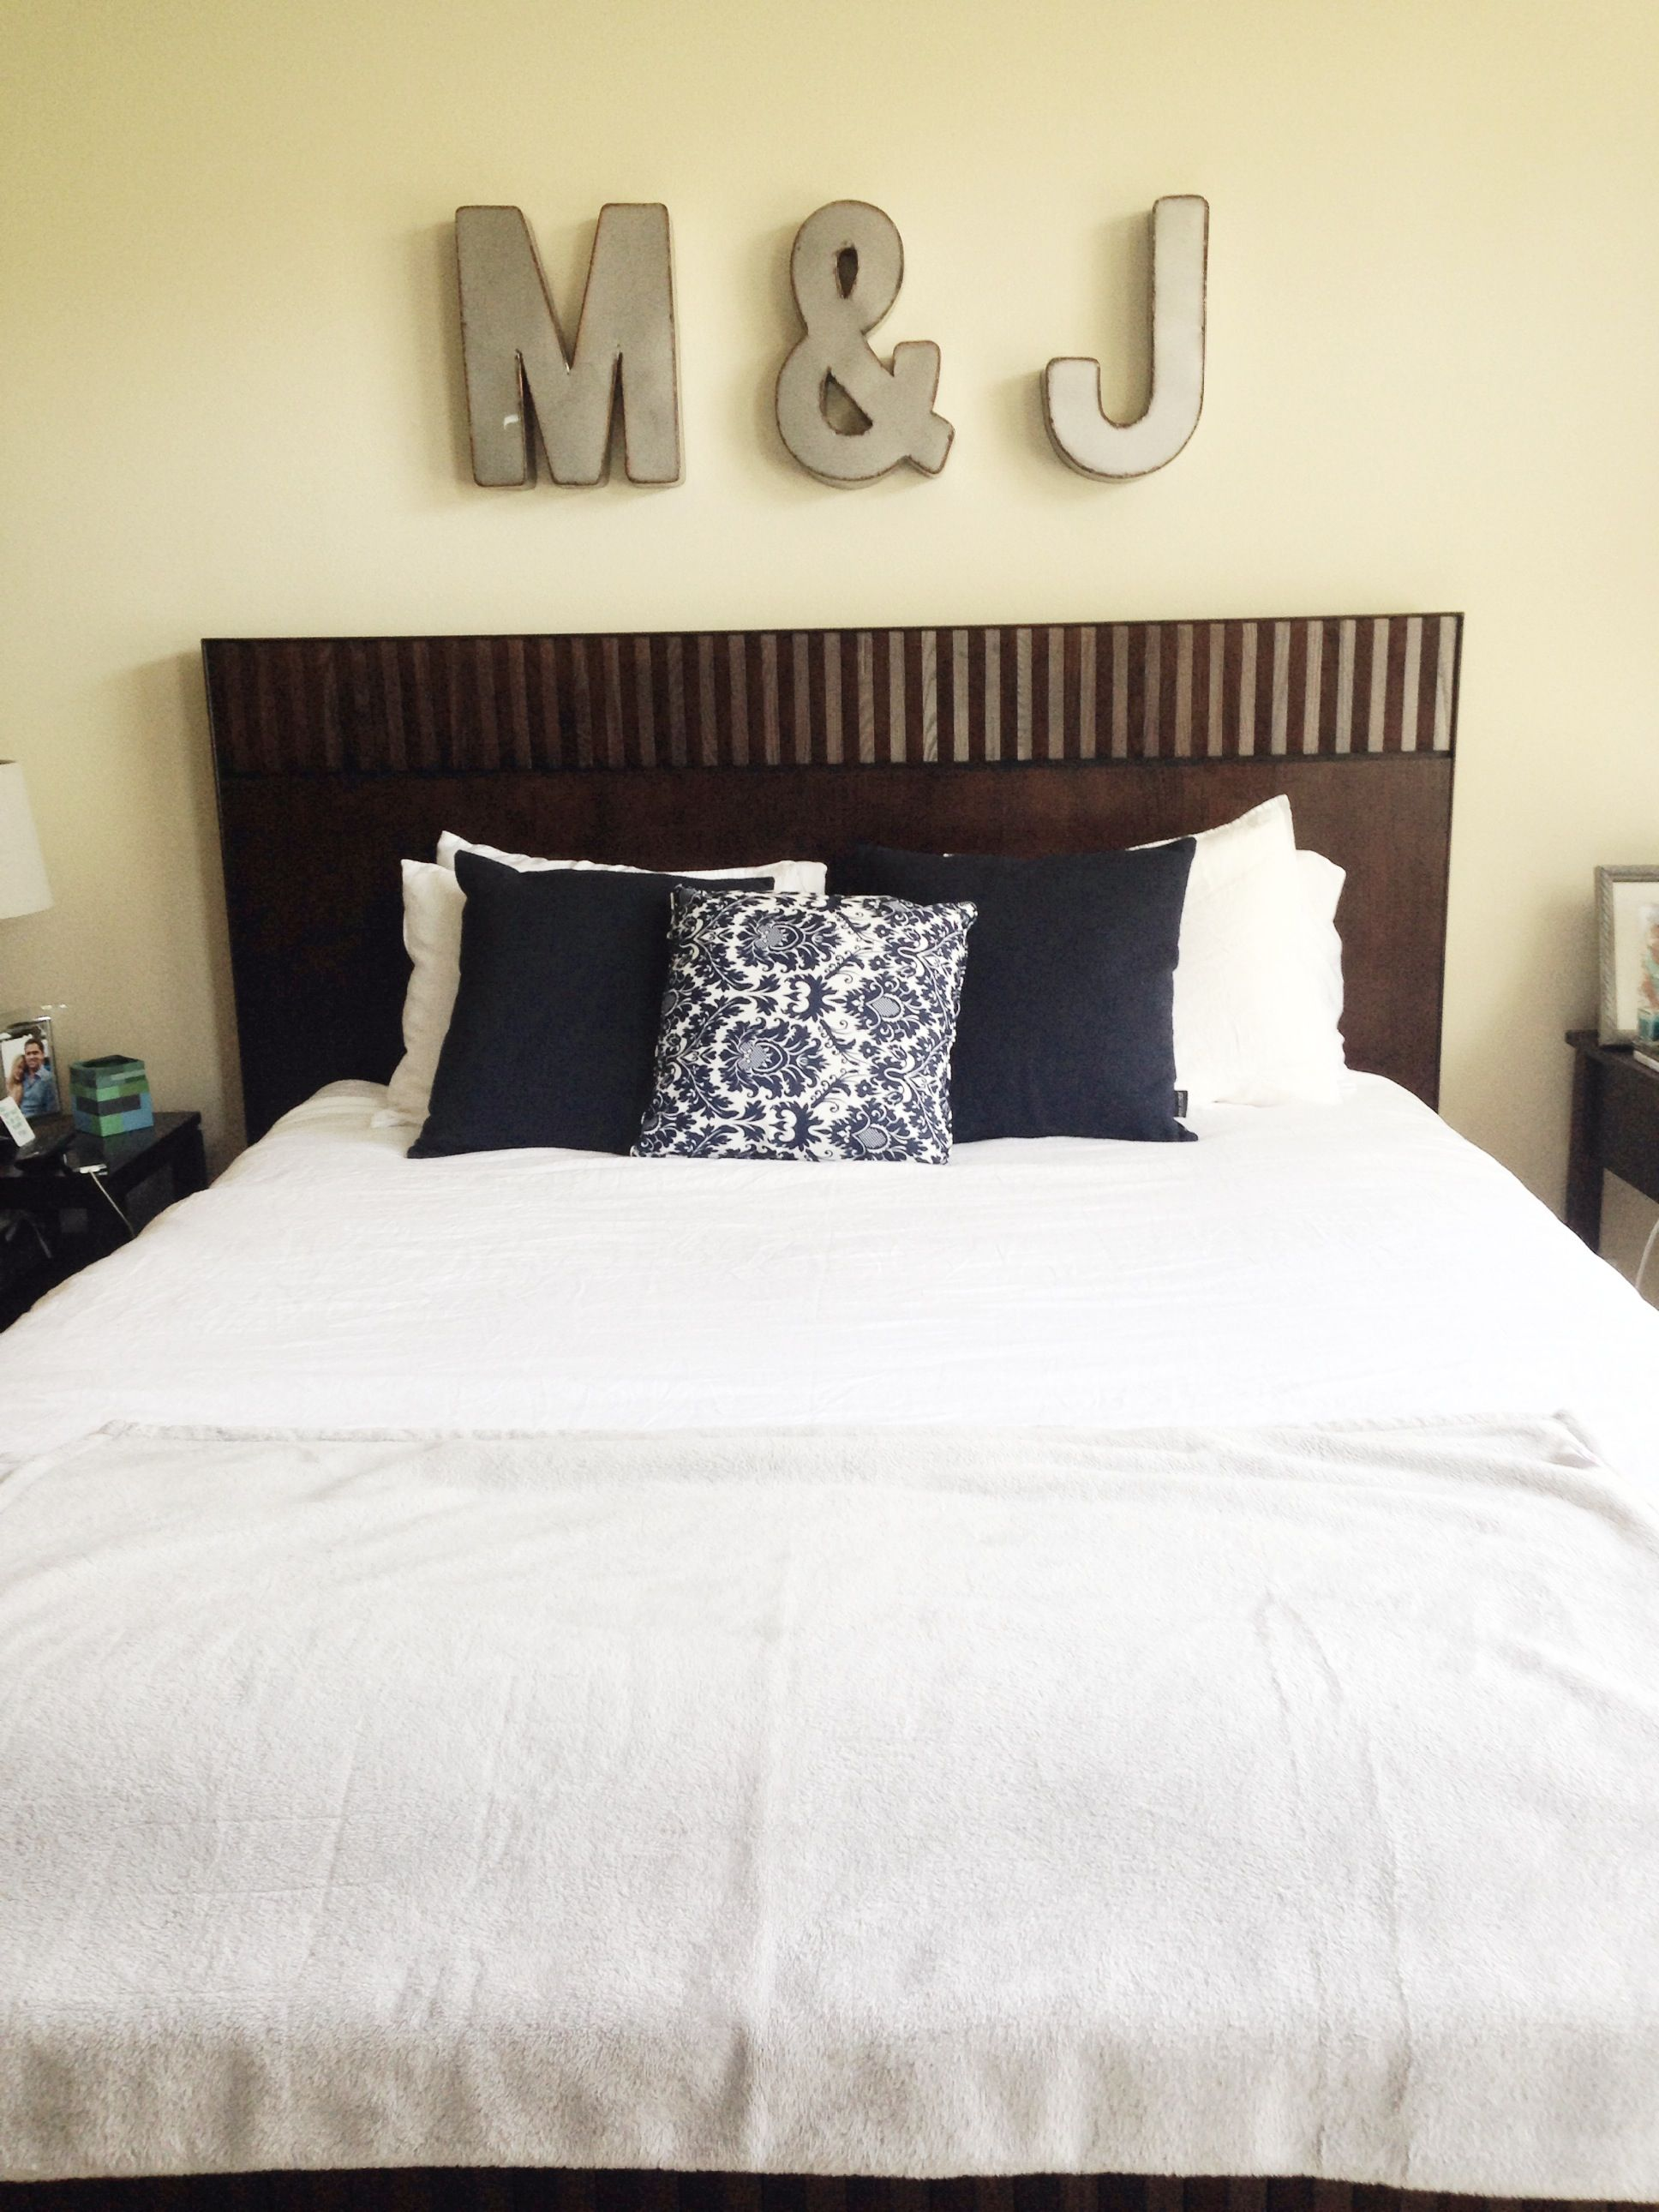 Couples bedroom decor | Bedroom decor for couples ...